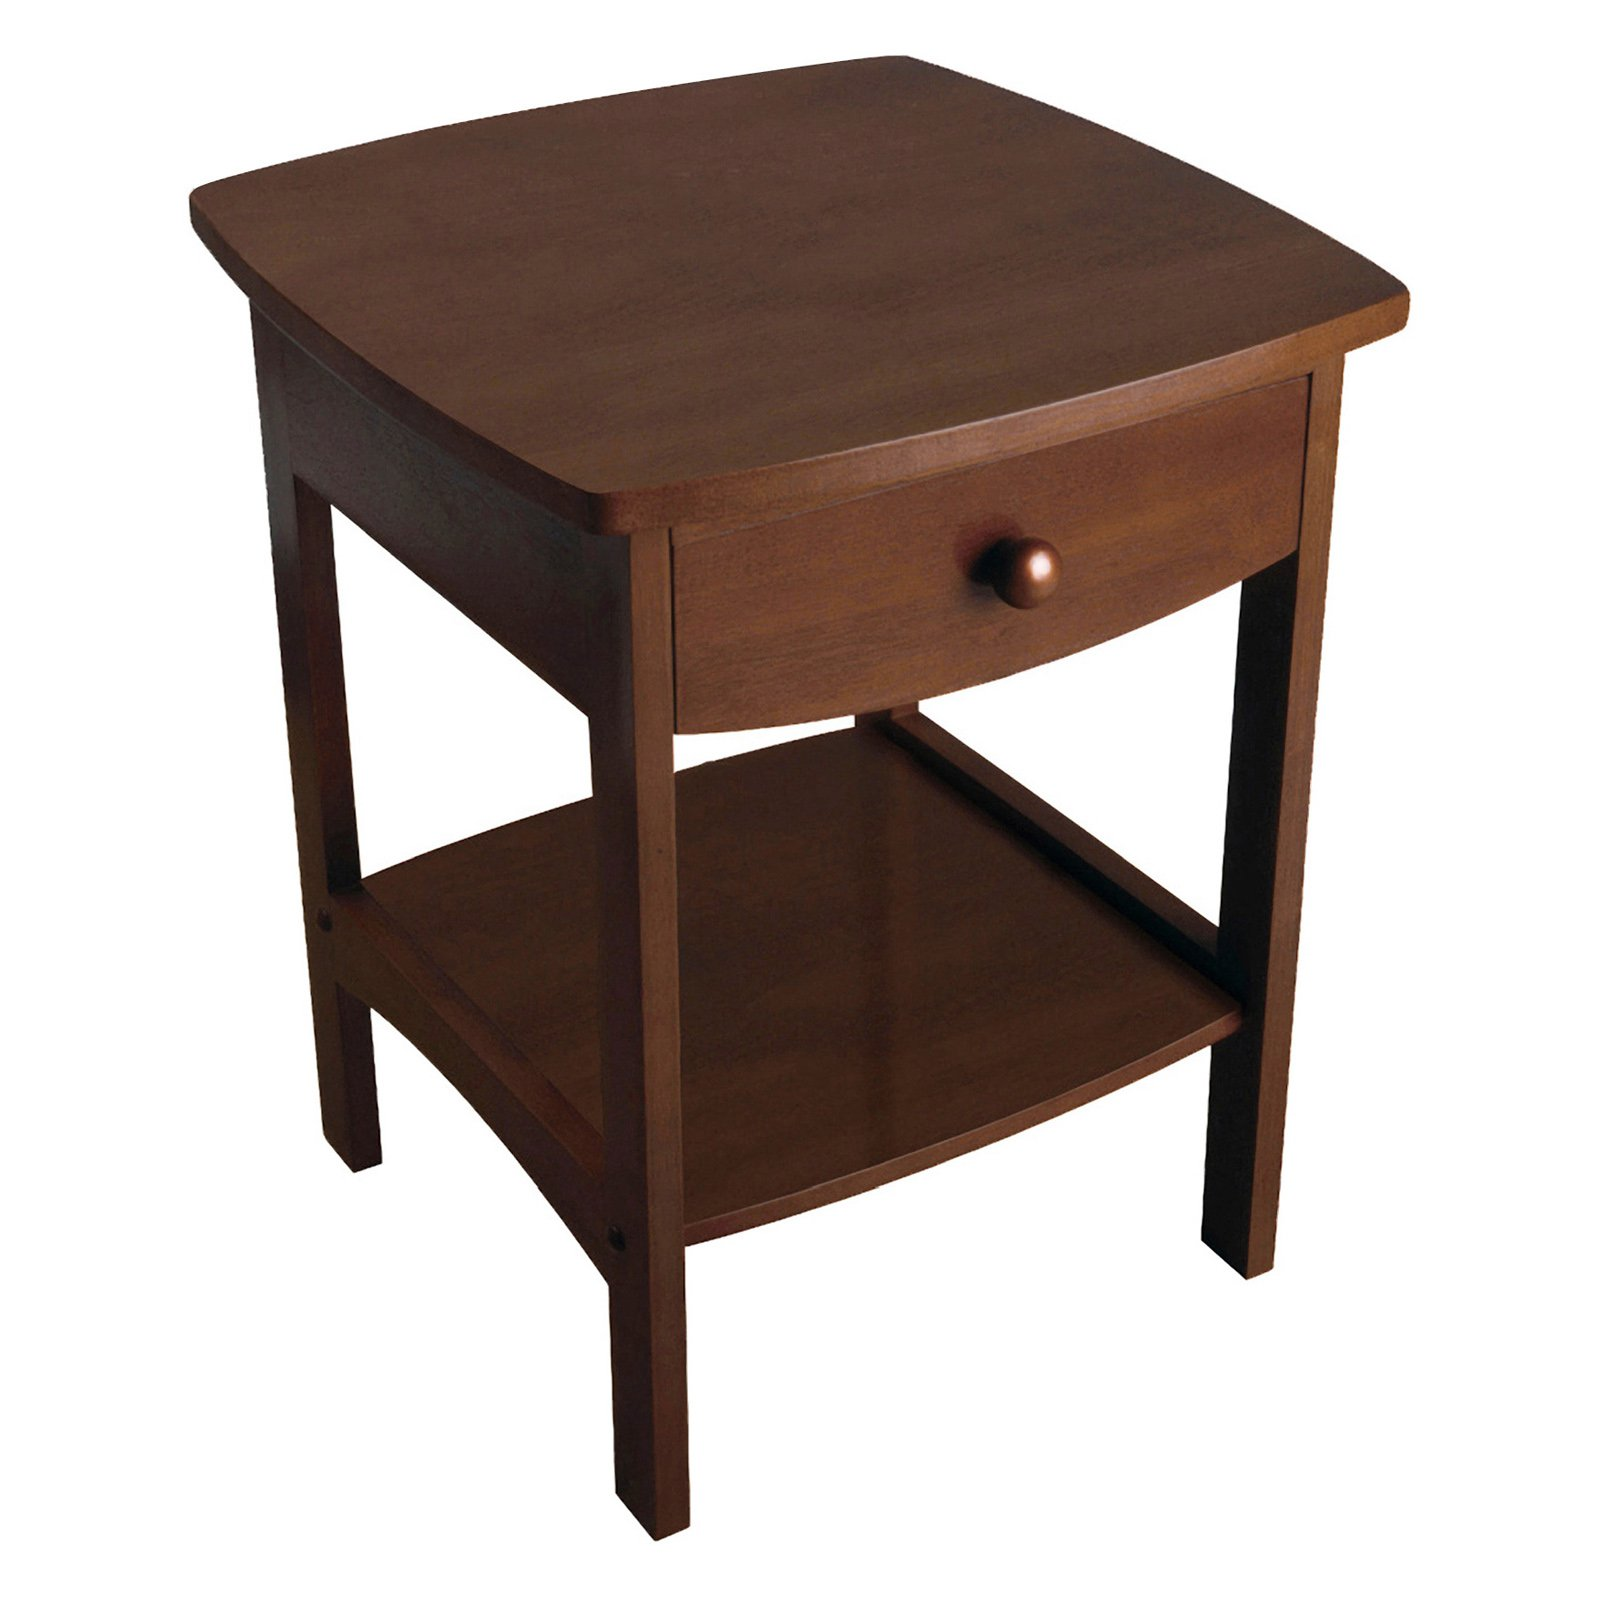 winsome trading curved drawer nightstand end table walnut one accent project decorative corners bamboo gray nesting tables bathroom lighting brass drum coffee rowico furniture